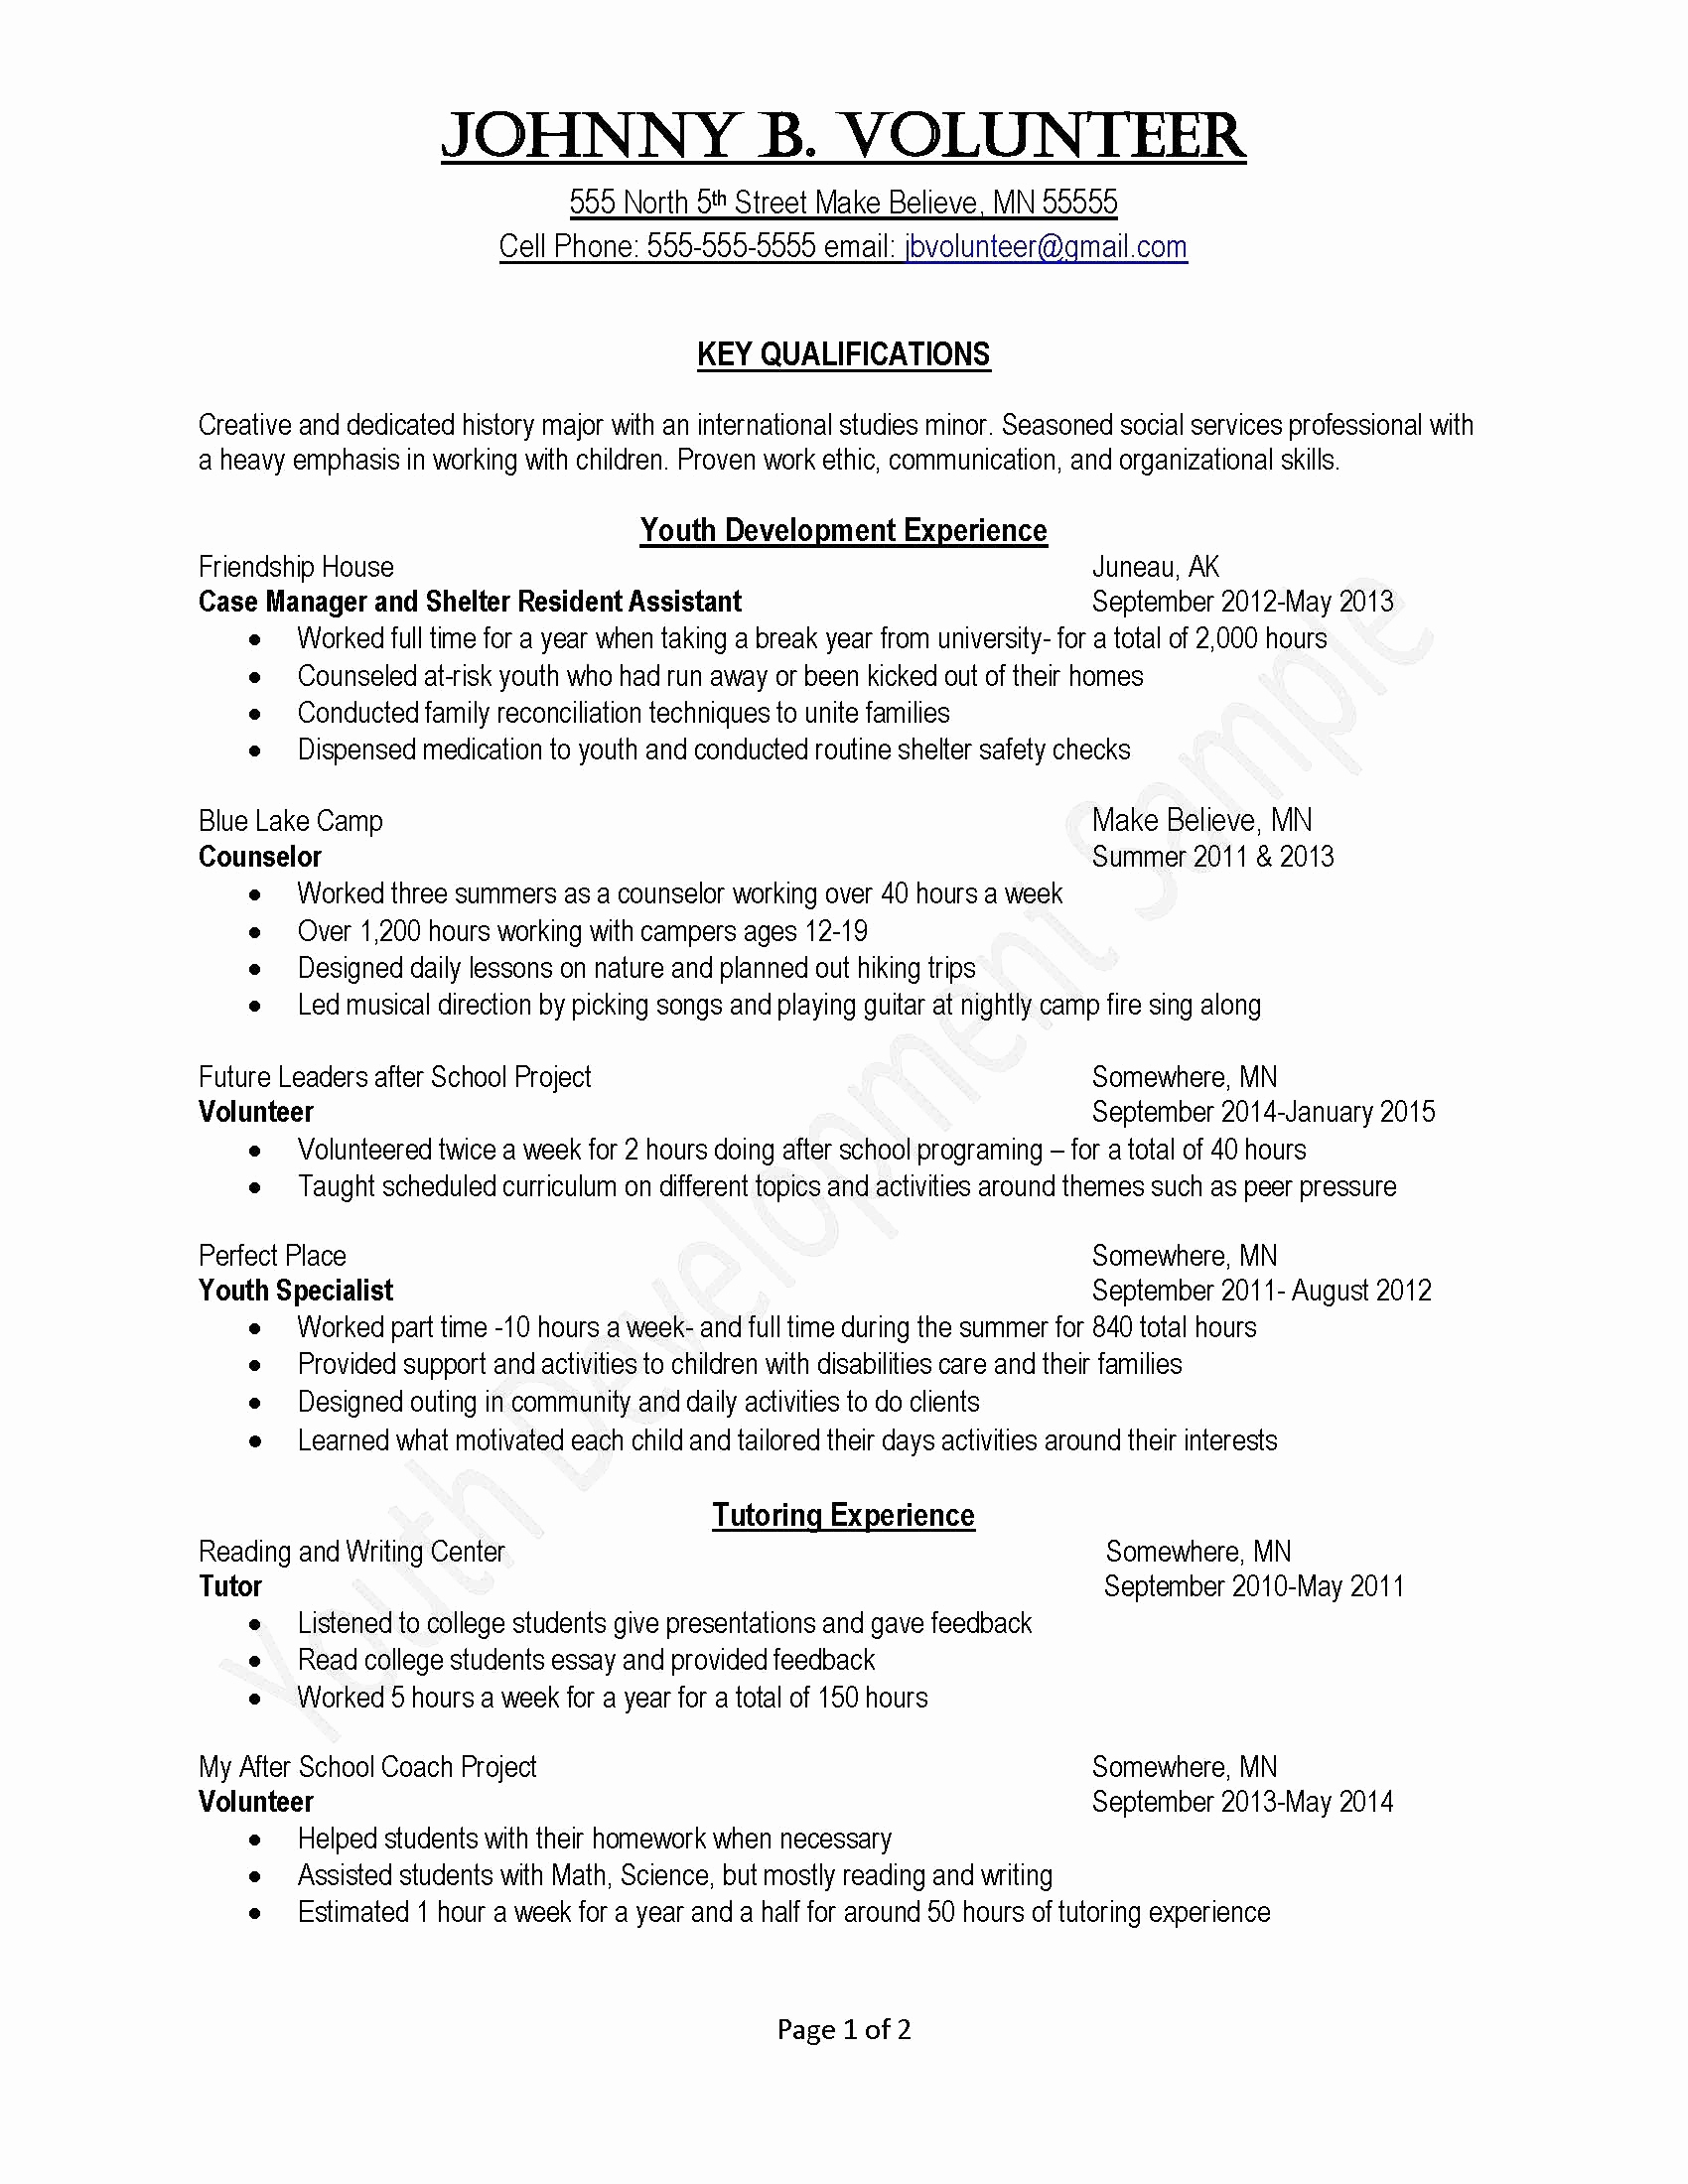 Rental Cover Letter Template - Good Cover Letter Template Unique Good Cover Letters for Jobs Unique